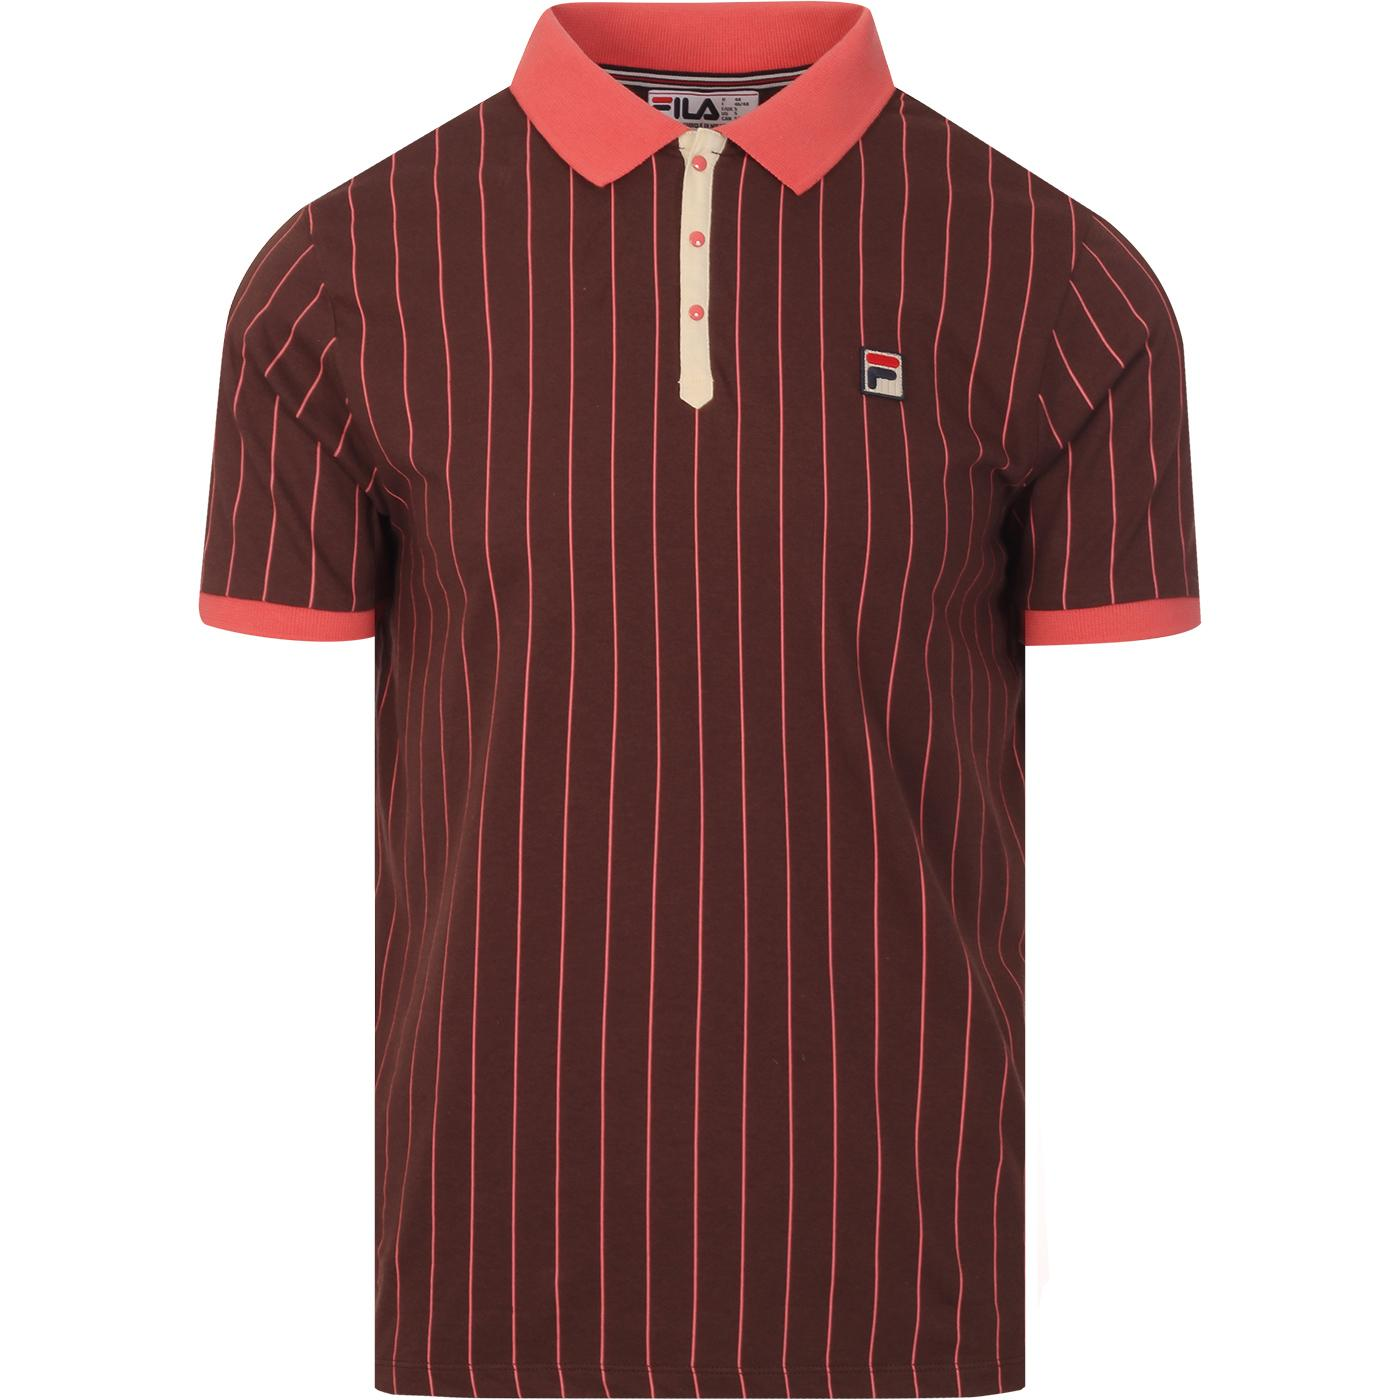 BB1 FILA VINTAGE Retro Stripe Borg Tennis Polo FR